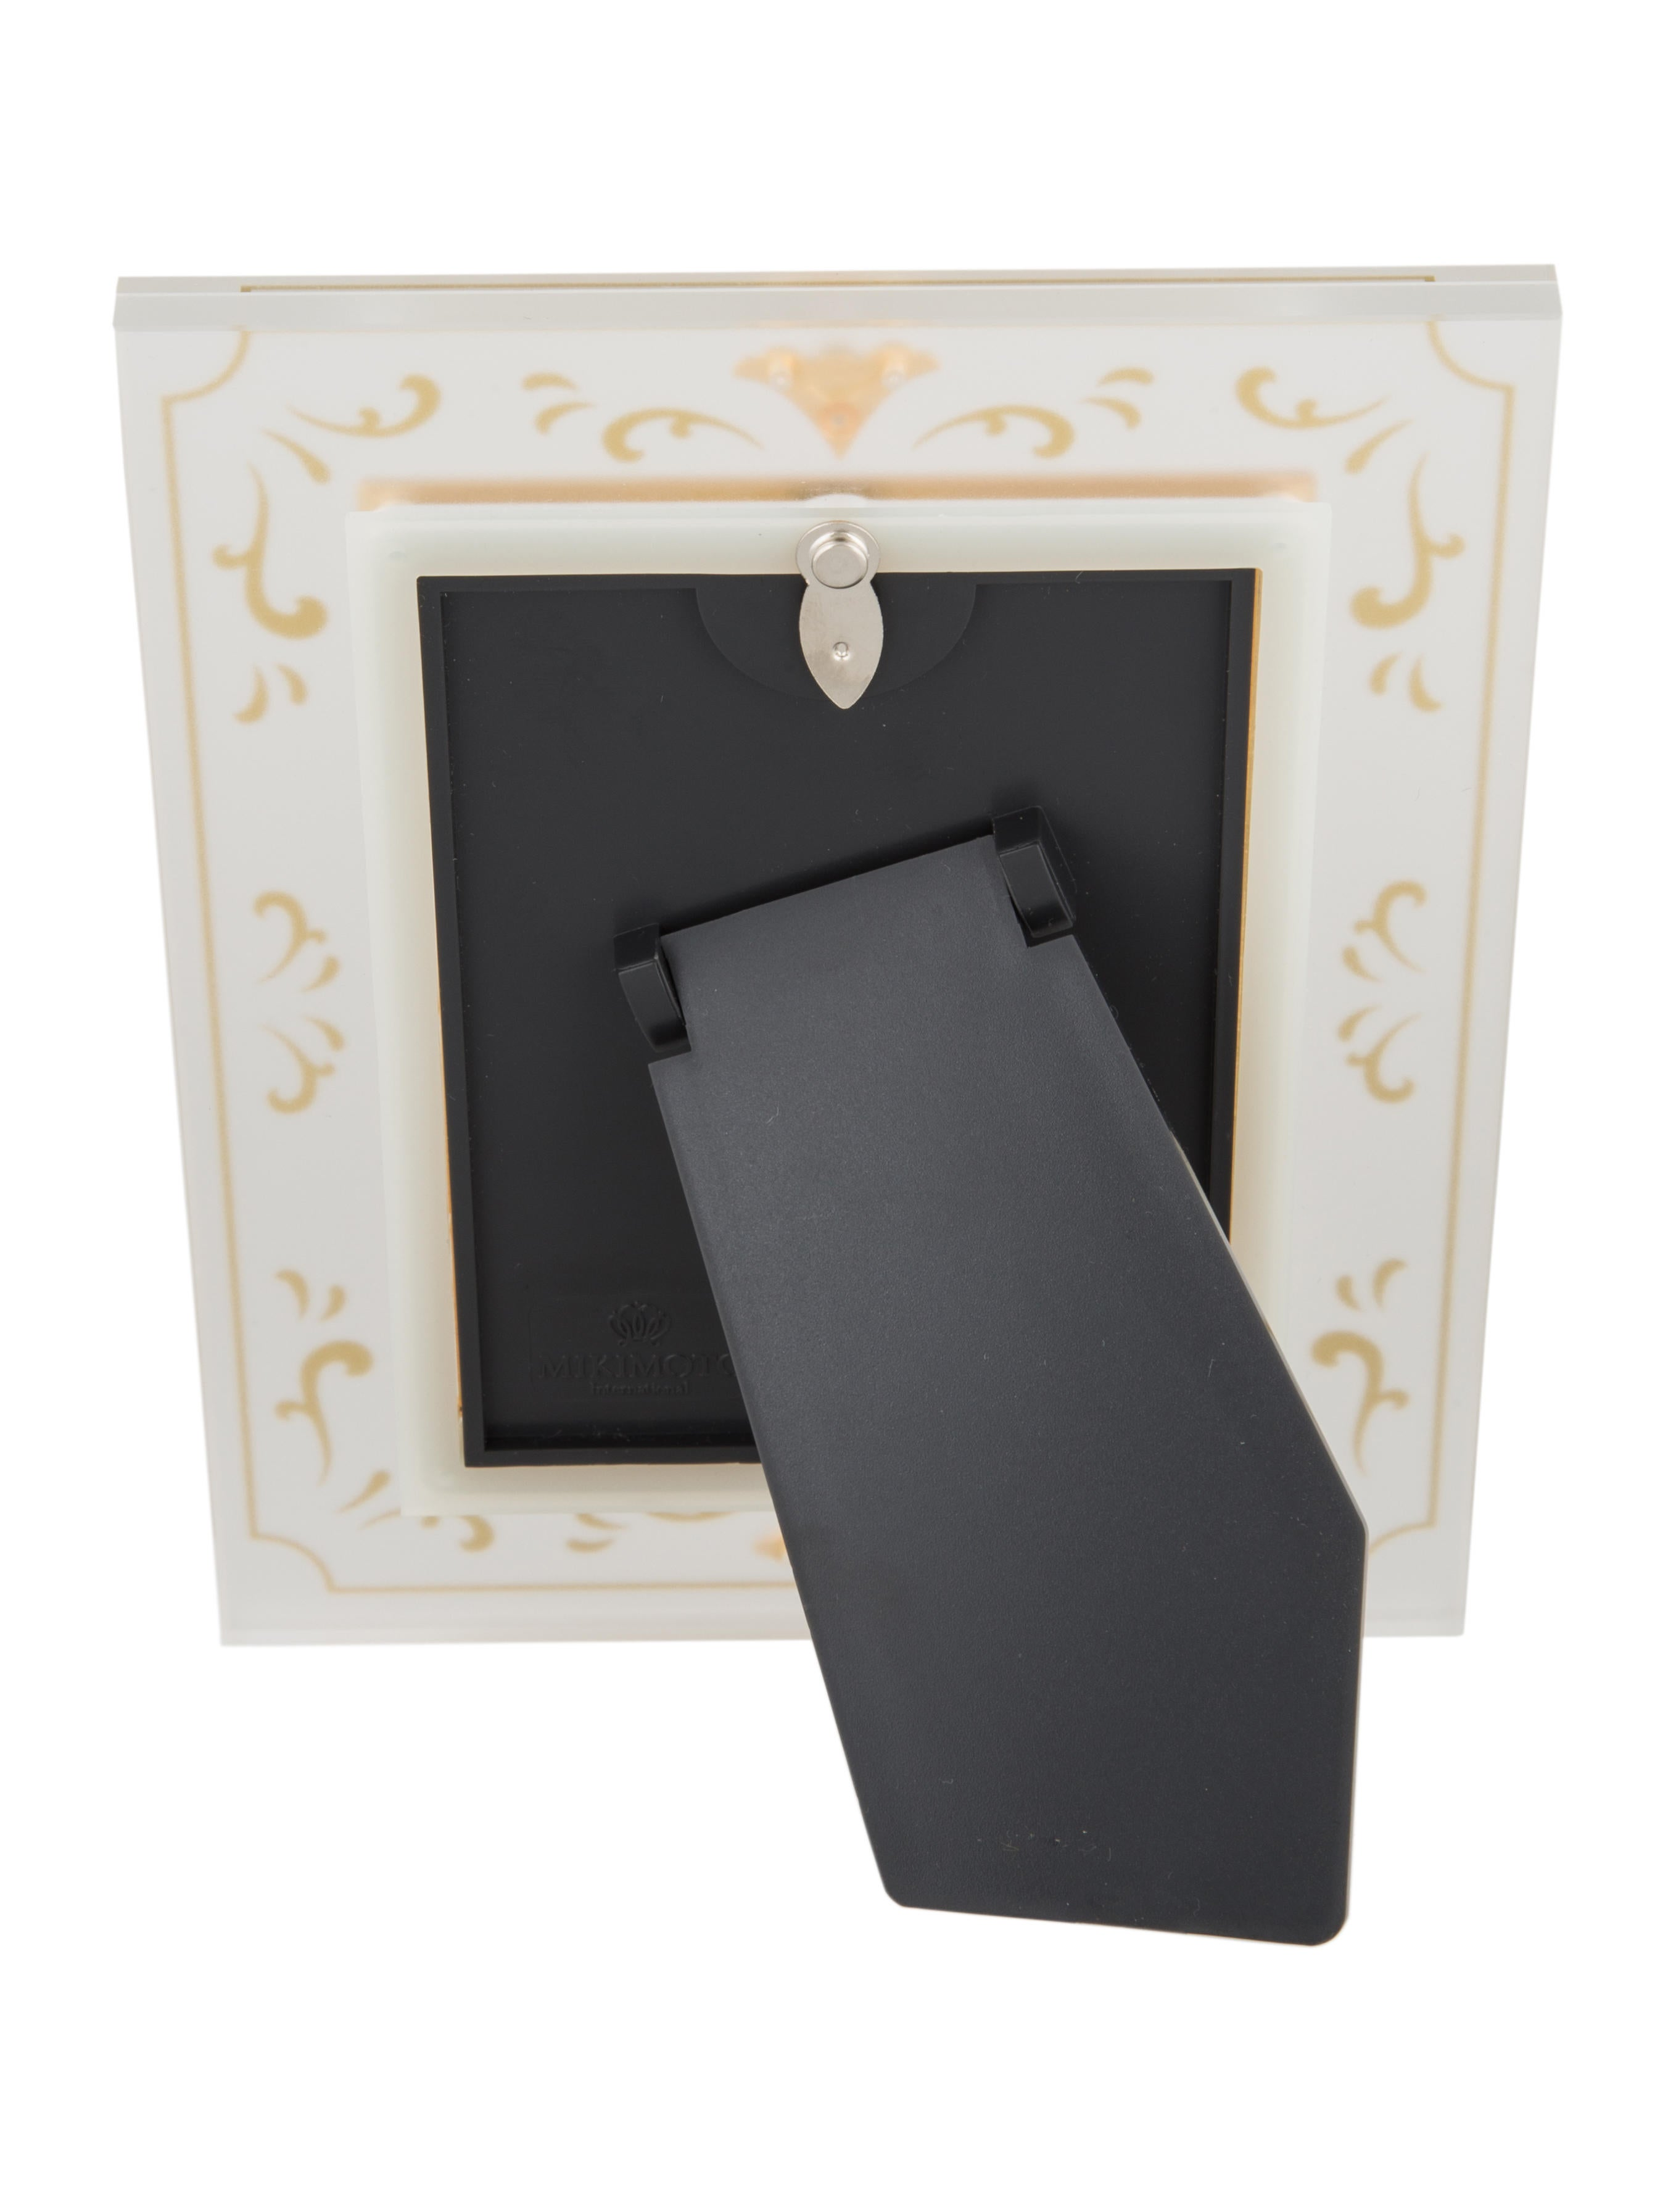 Mikimoto pearl embellished picture frame decor and for Embellished mirror frame